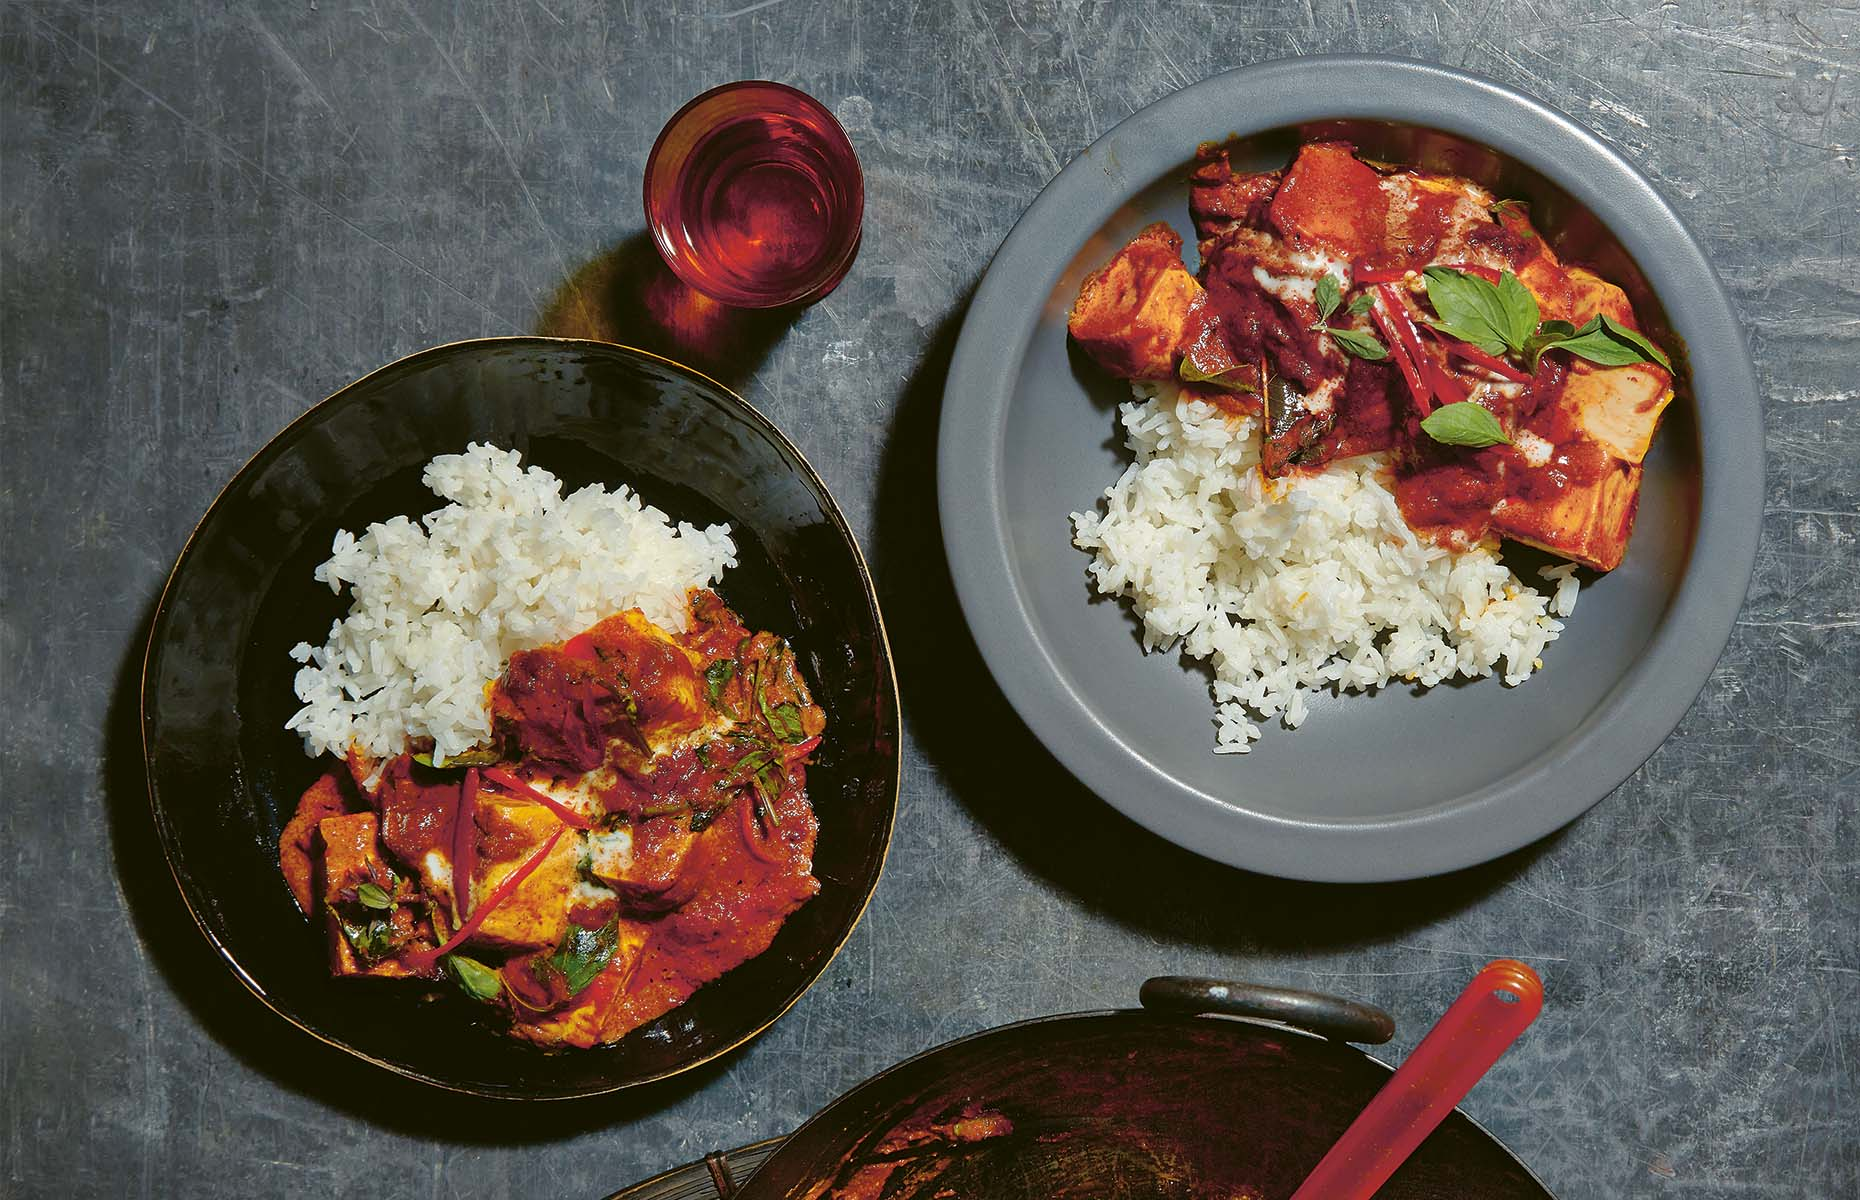 Panang curry (Image: Rosa'sThaiCafé: The Vegetarian Cookbook/Mitchell Beazley)